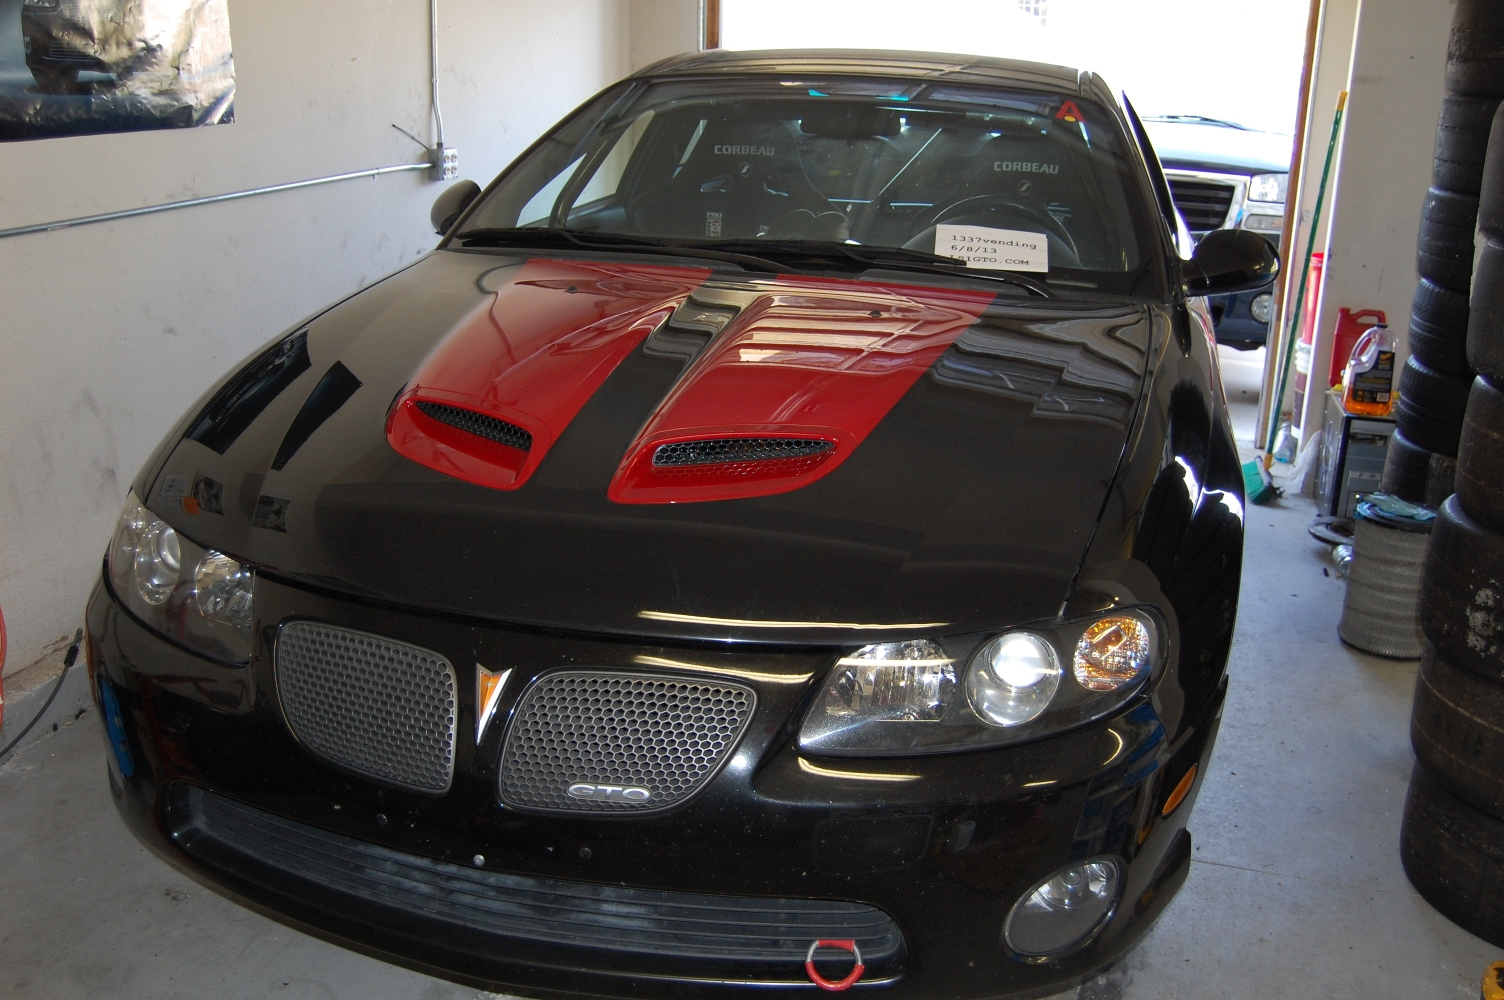 Buy my track car/Sell me a motor! - LS1GTO.com Forums